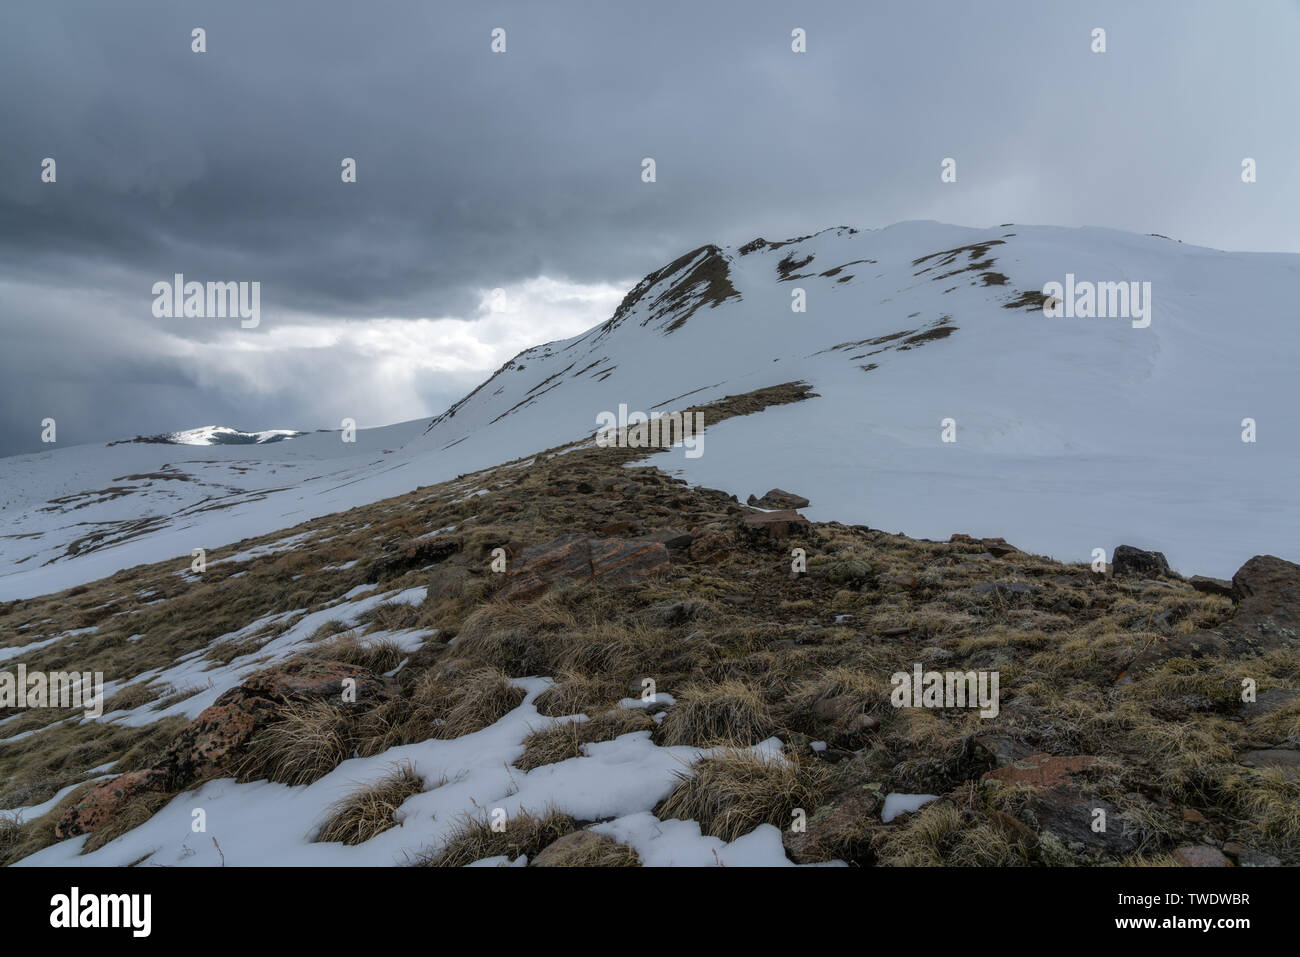 Hiking from Guanella Pass, near Georgetown, Colorado. - Stock Image